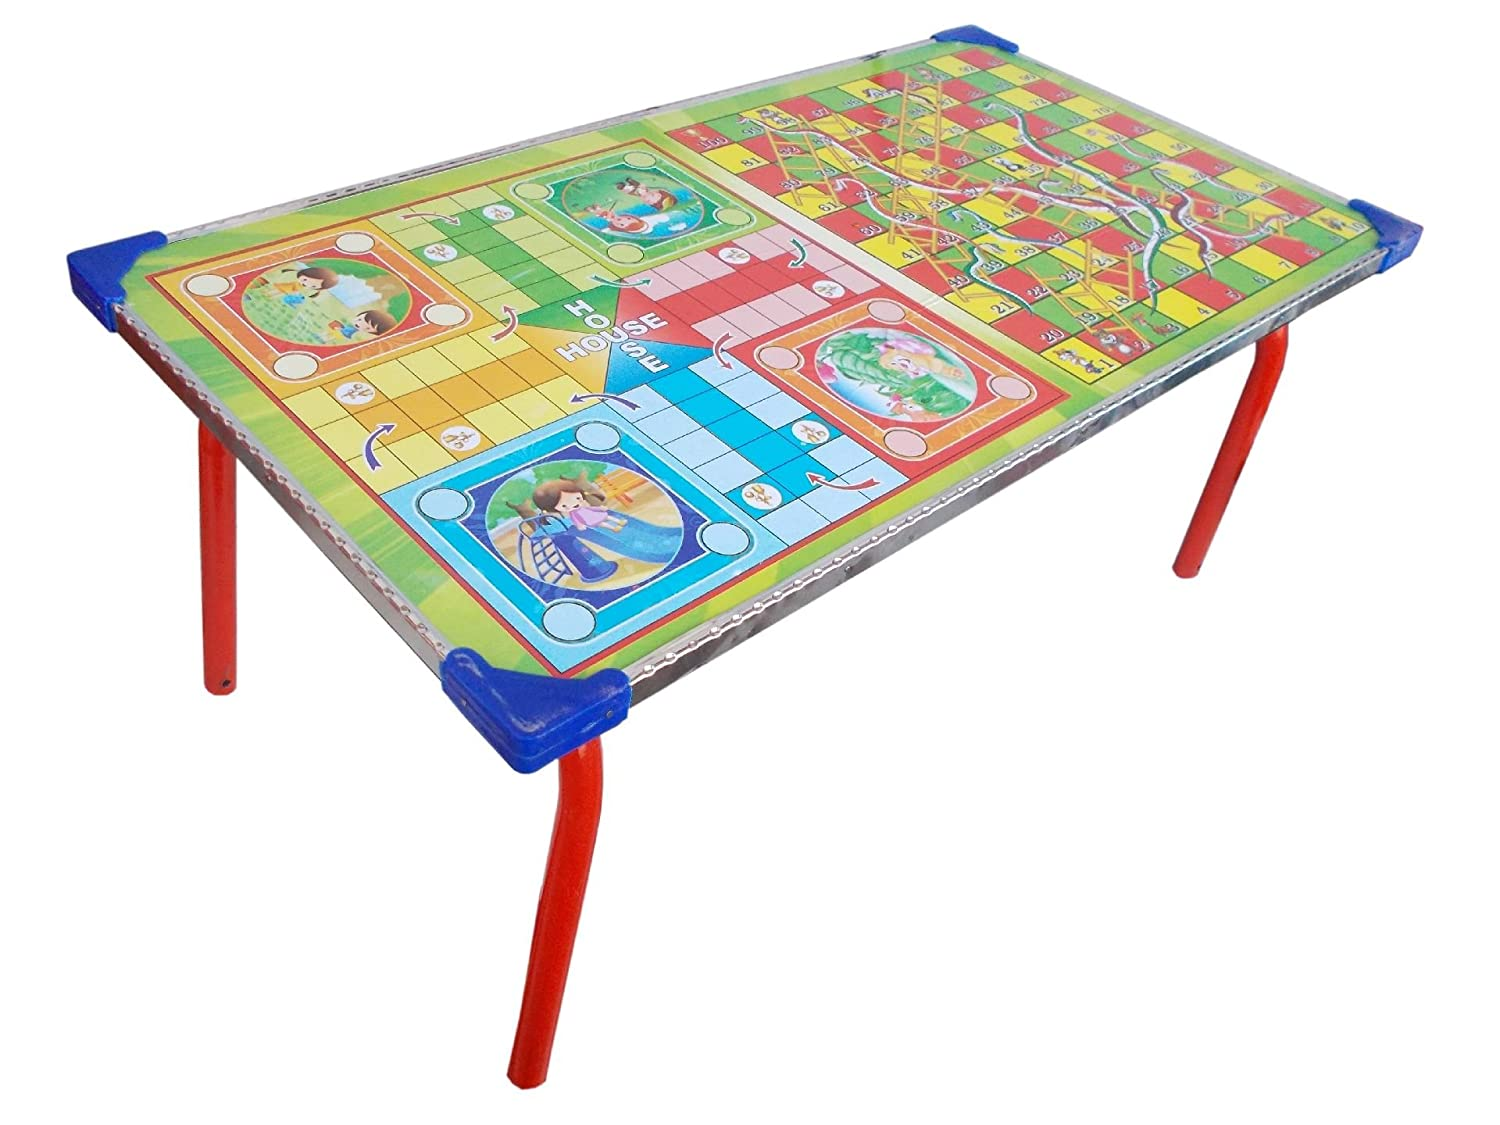 Delightful Buy Ks 2 In 1 Kids Board Game Table Ludo Snake U0026 Ladder Bed Study Laptop  Support Table Online At Low Prices In India   Amazon.in